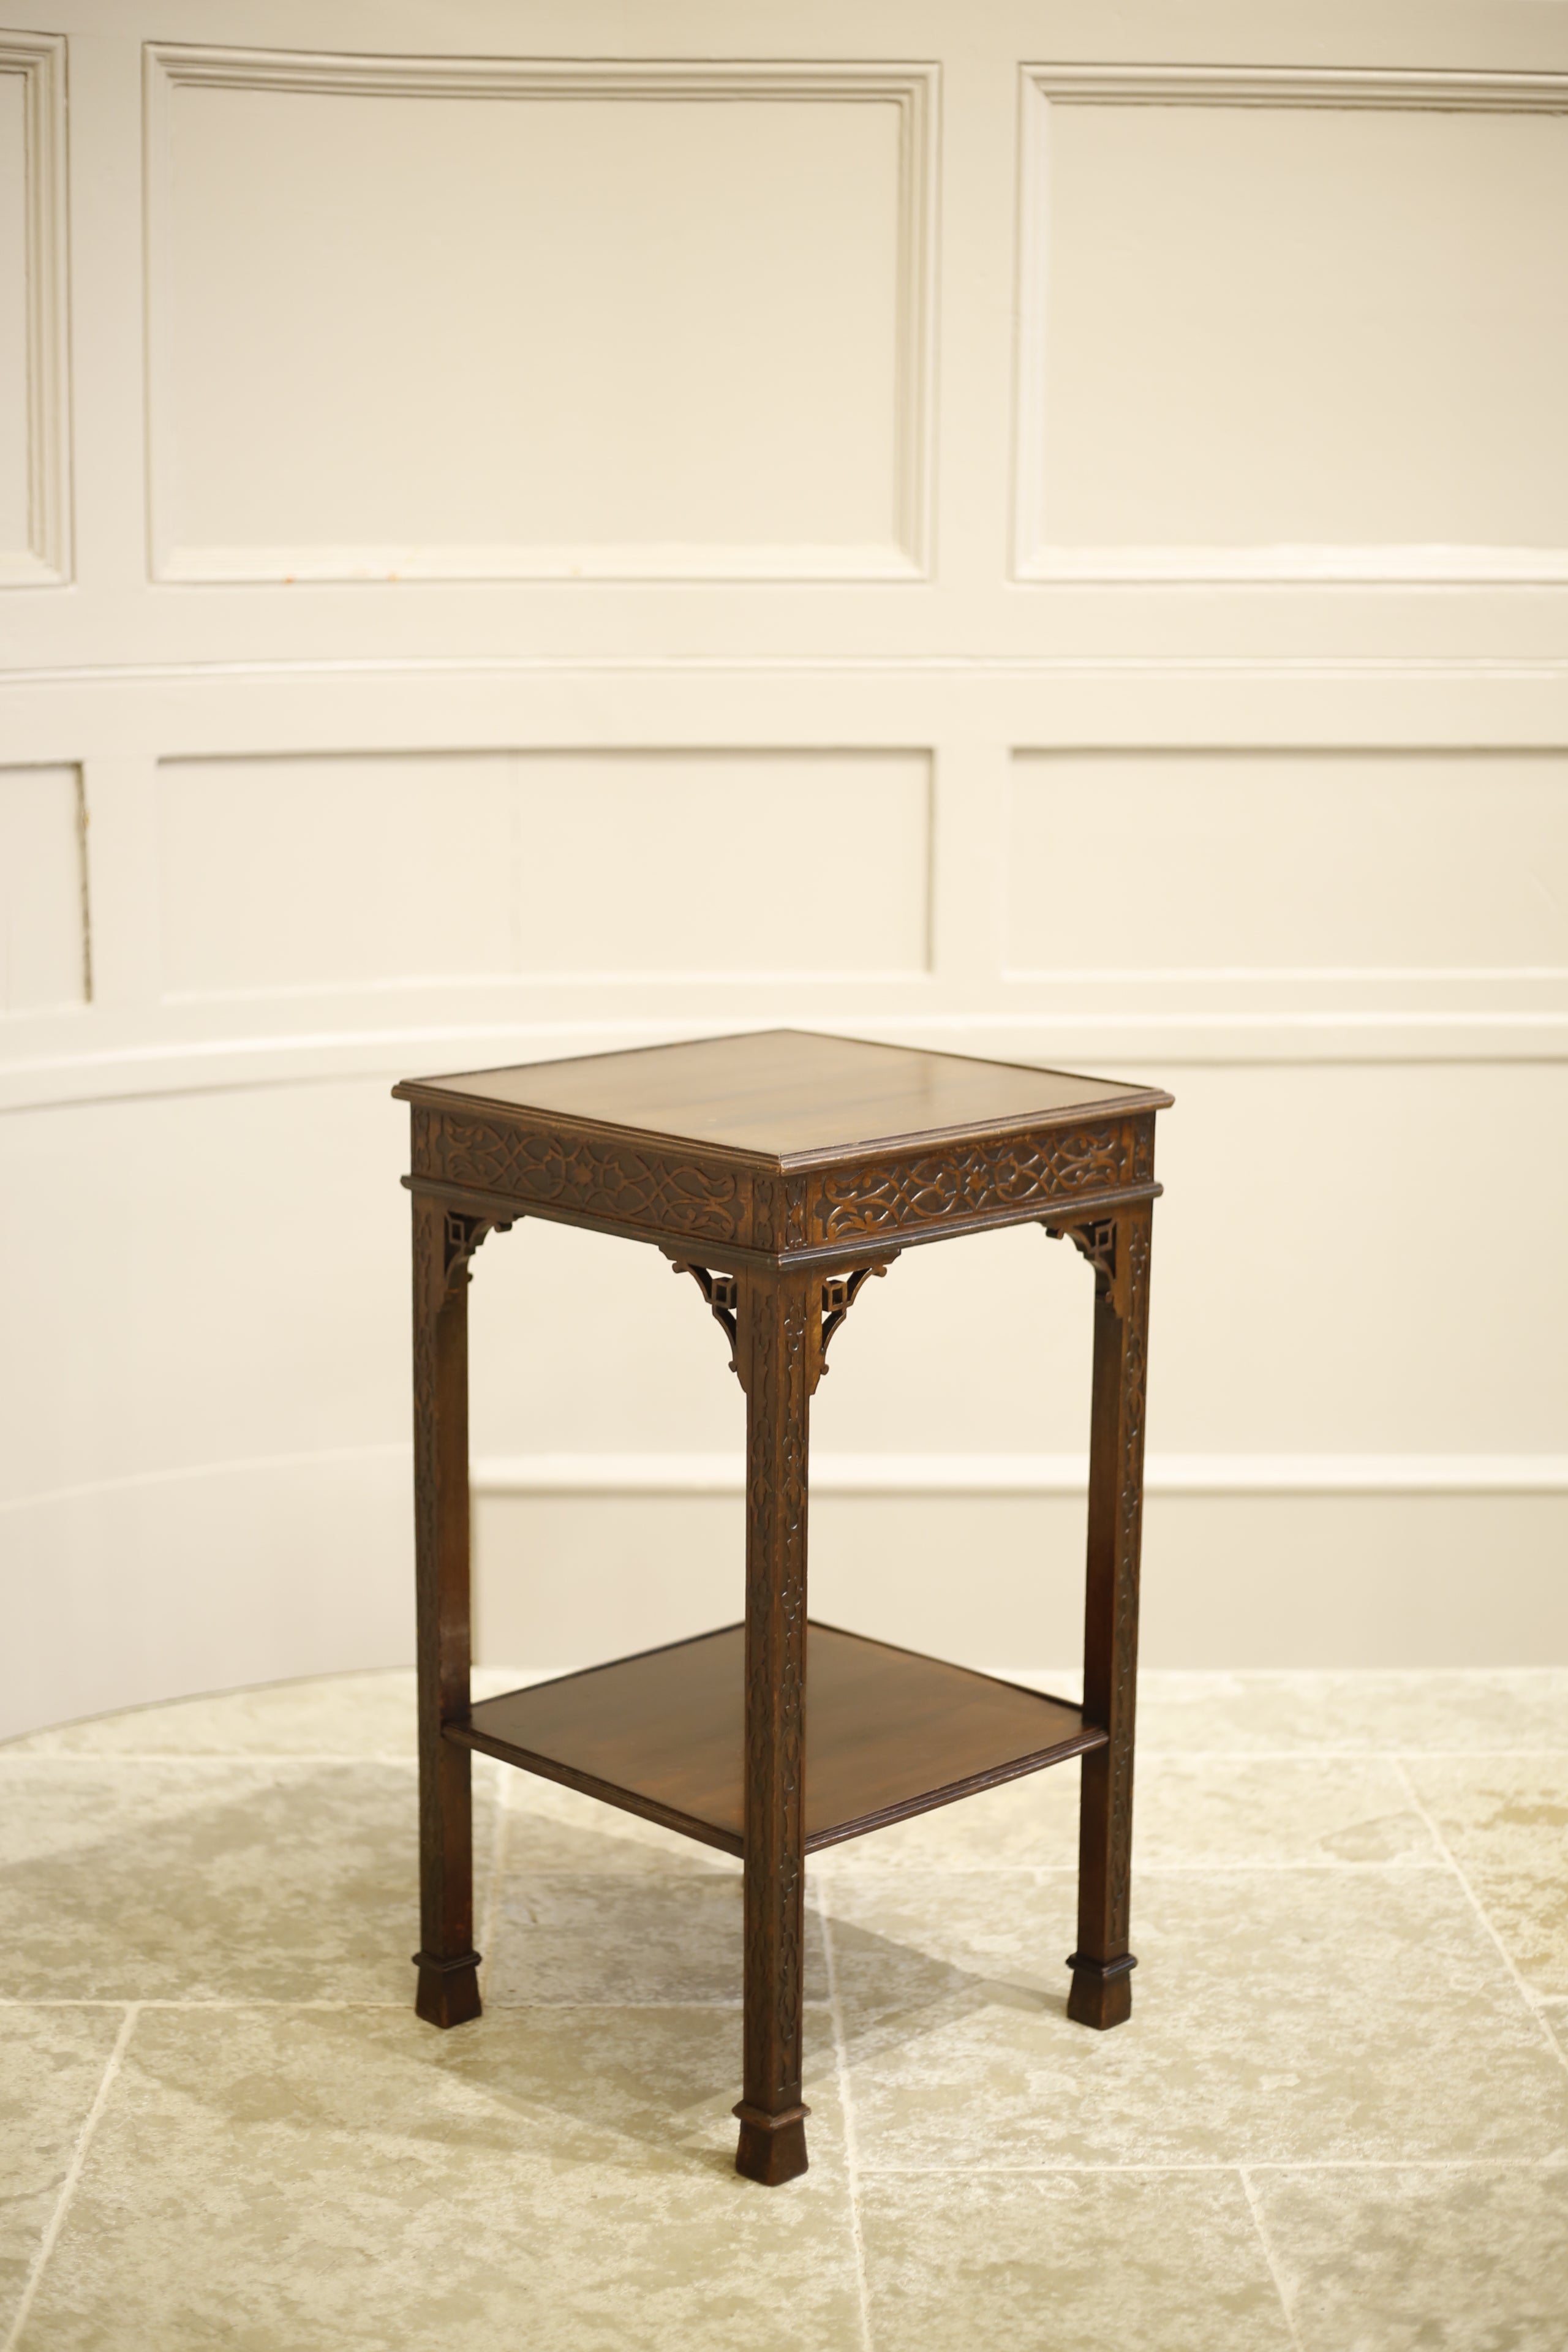 19th Century Mahogany Chippendale Side Table Tallboy Interiors